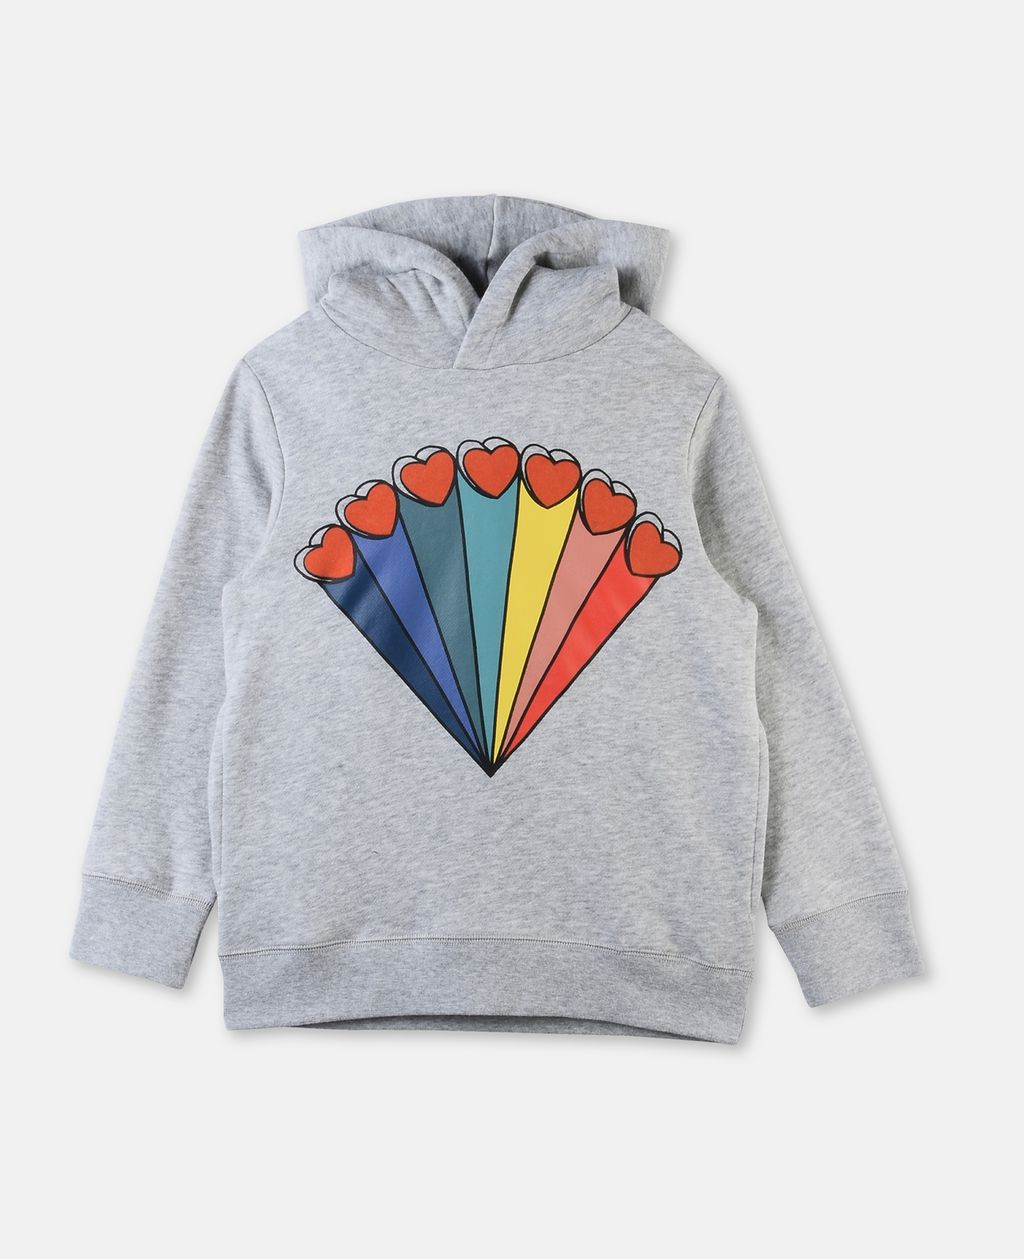 Heath Gray Rainbow and Hearts Printed Sweater - STELLA MCCARTNEY KIDS